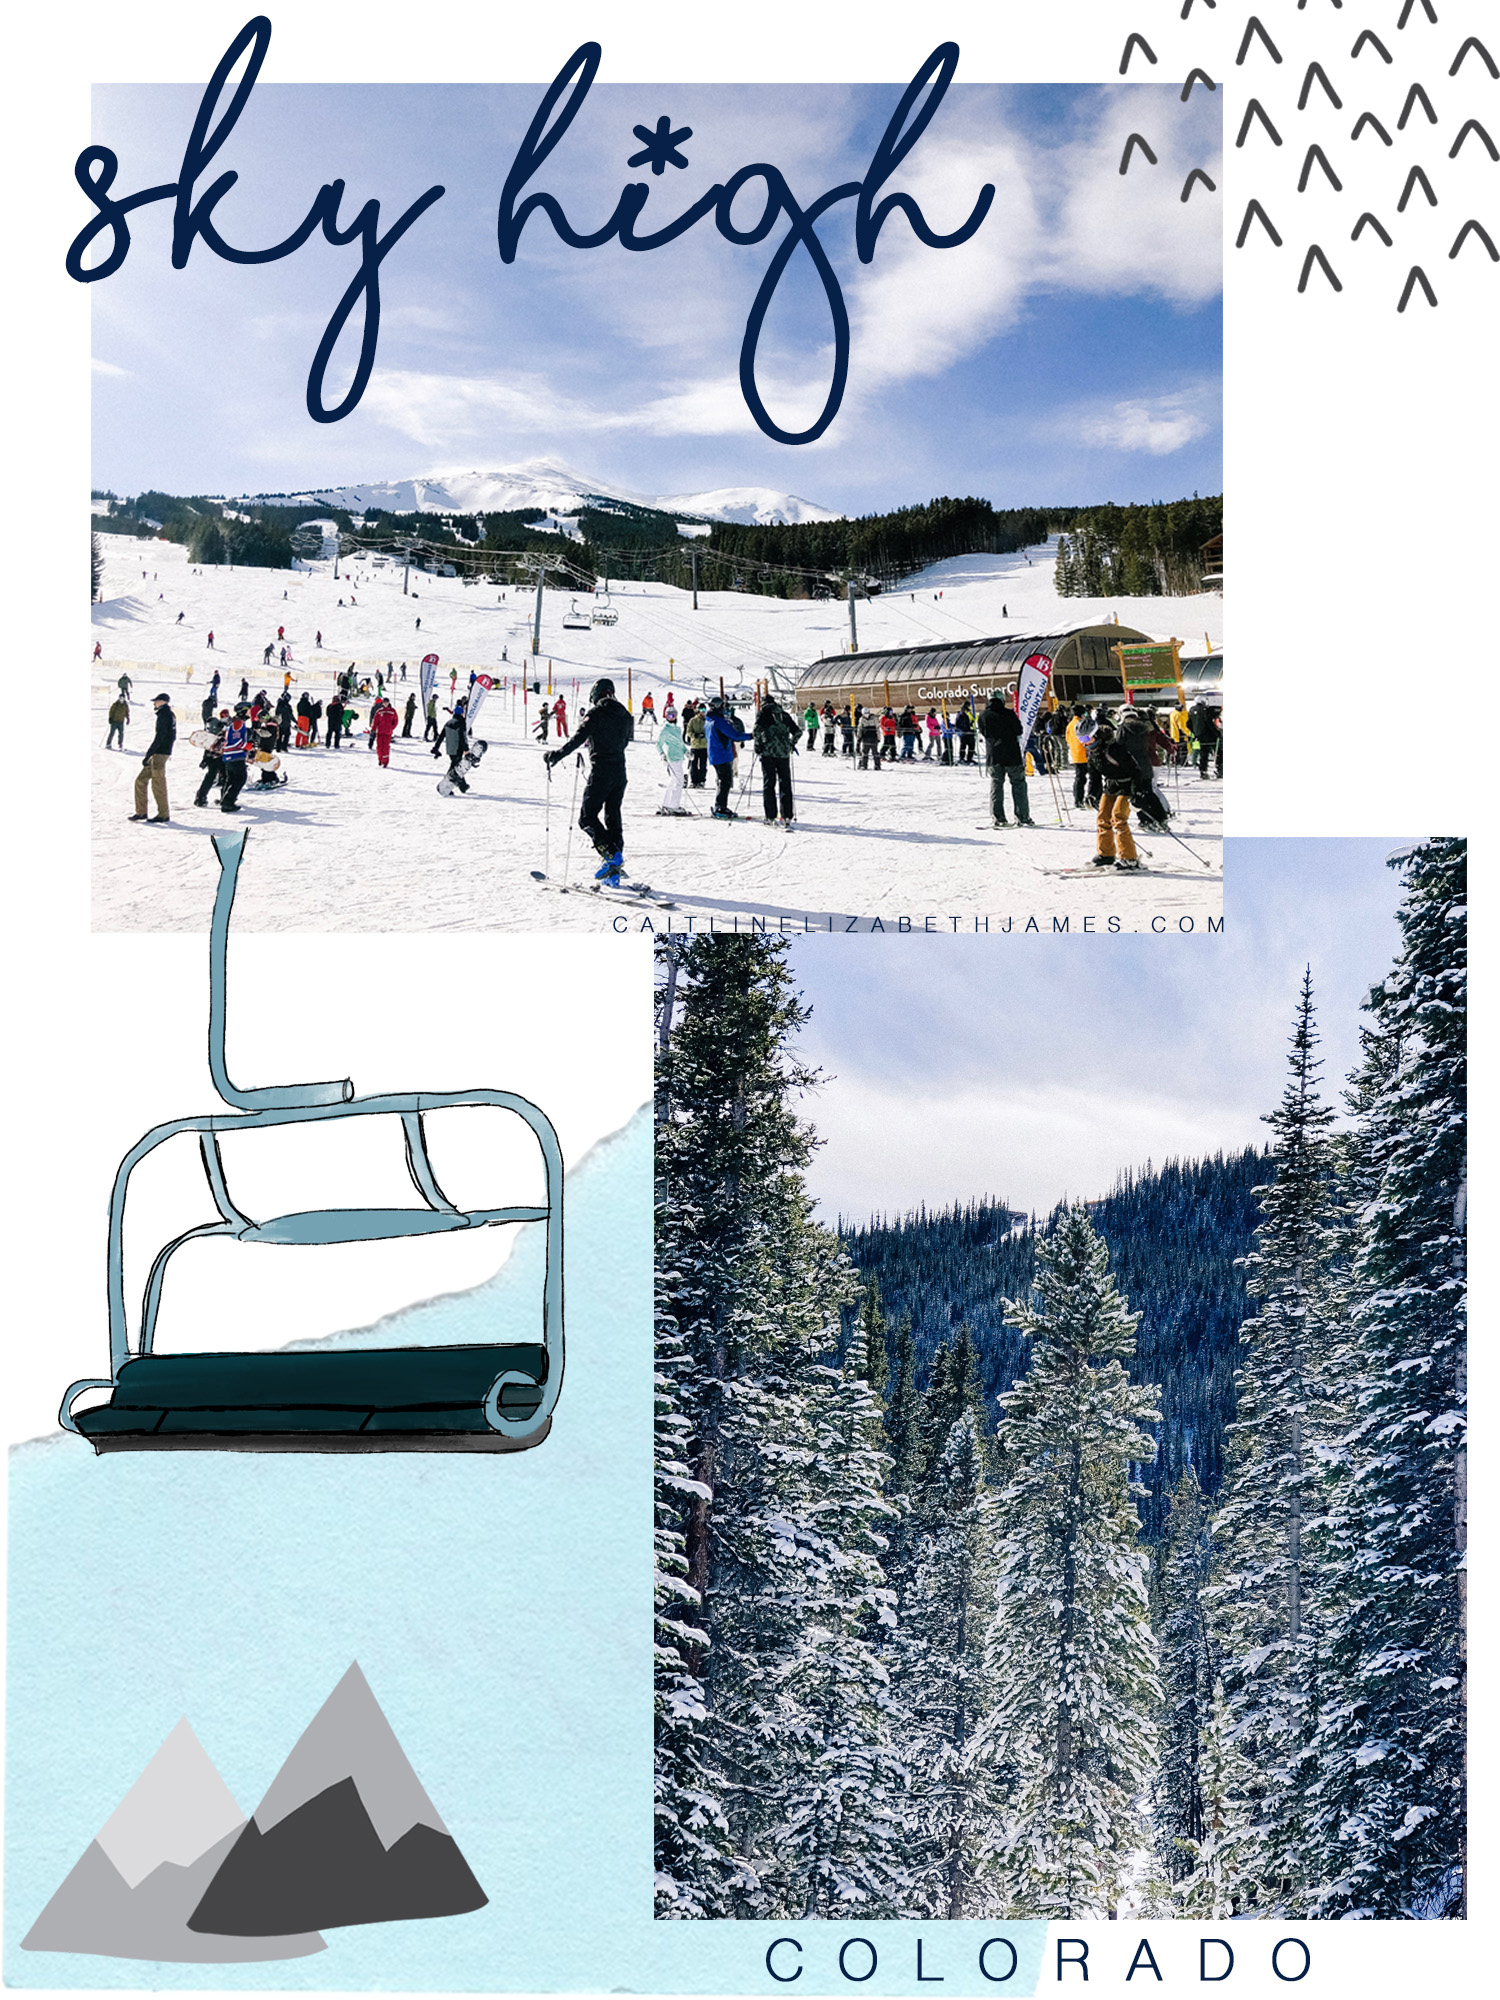 COLORADO-breckenridge-caitlin-elizabeth-james-wrap-up-skiing-travel-february.jpg